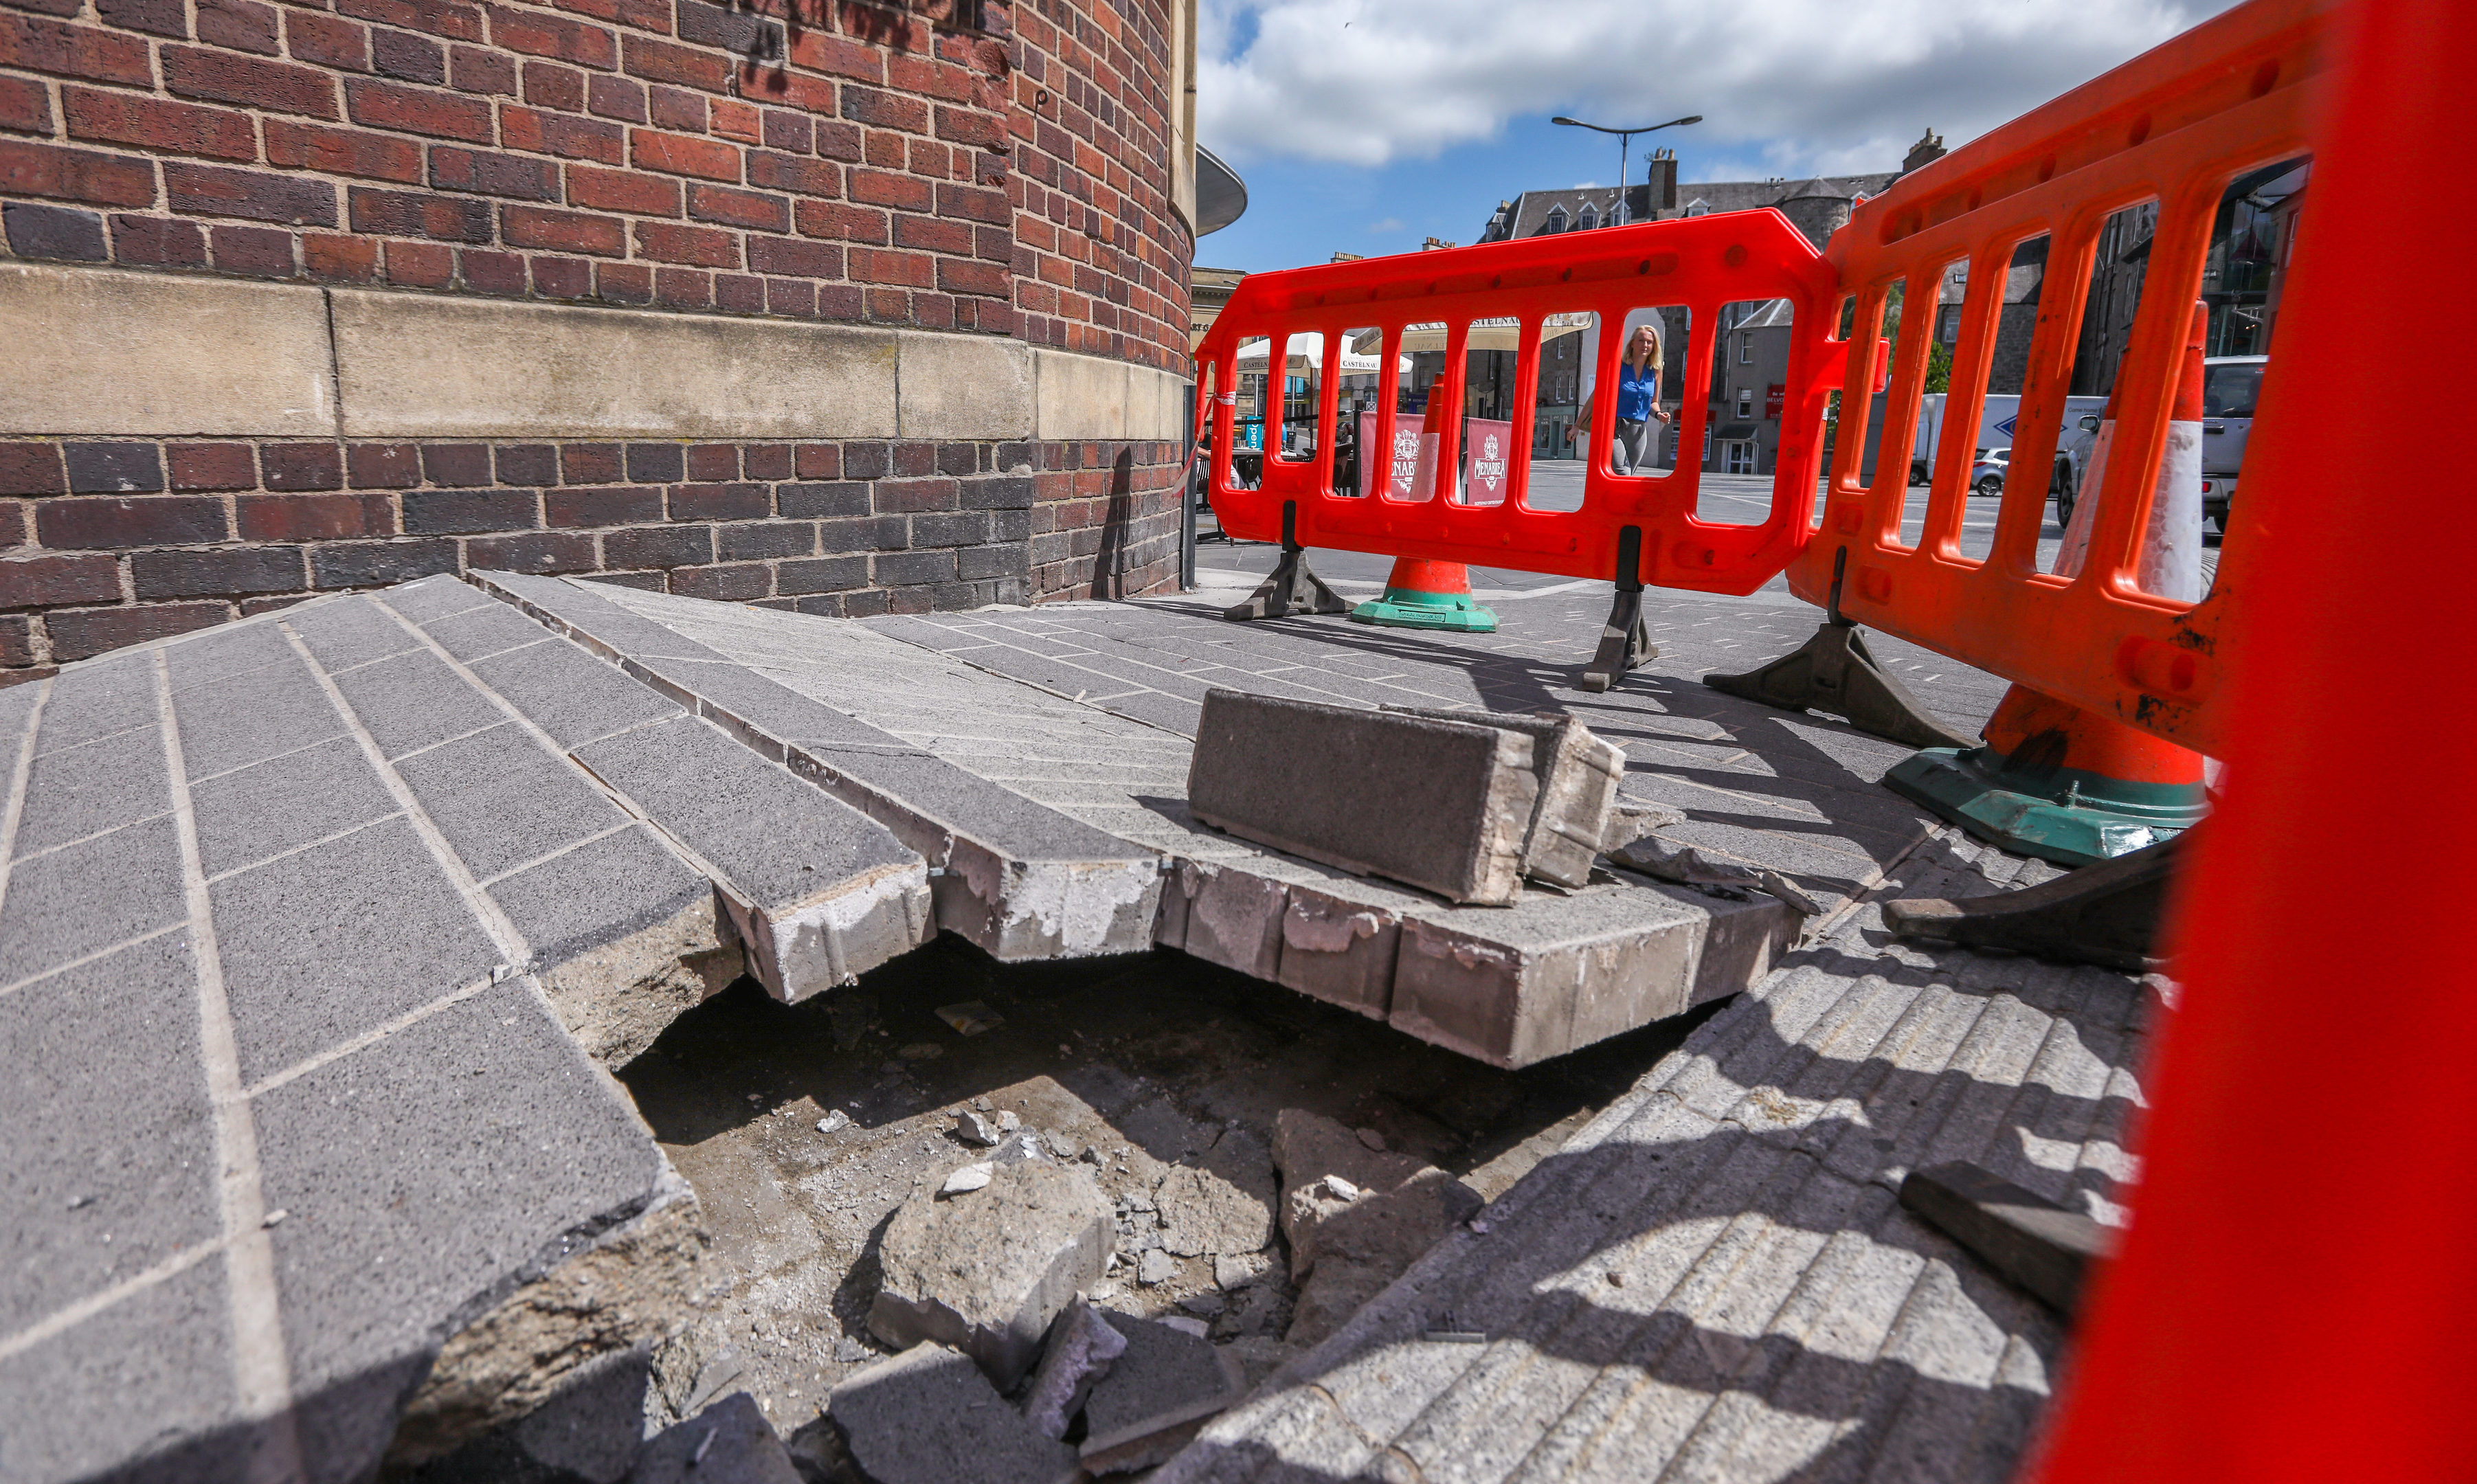 Barriers around the buckled pavement on Mill Street, Perth